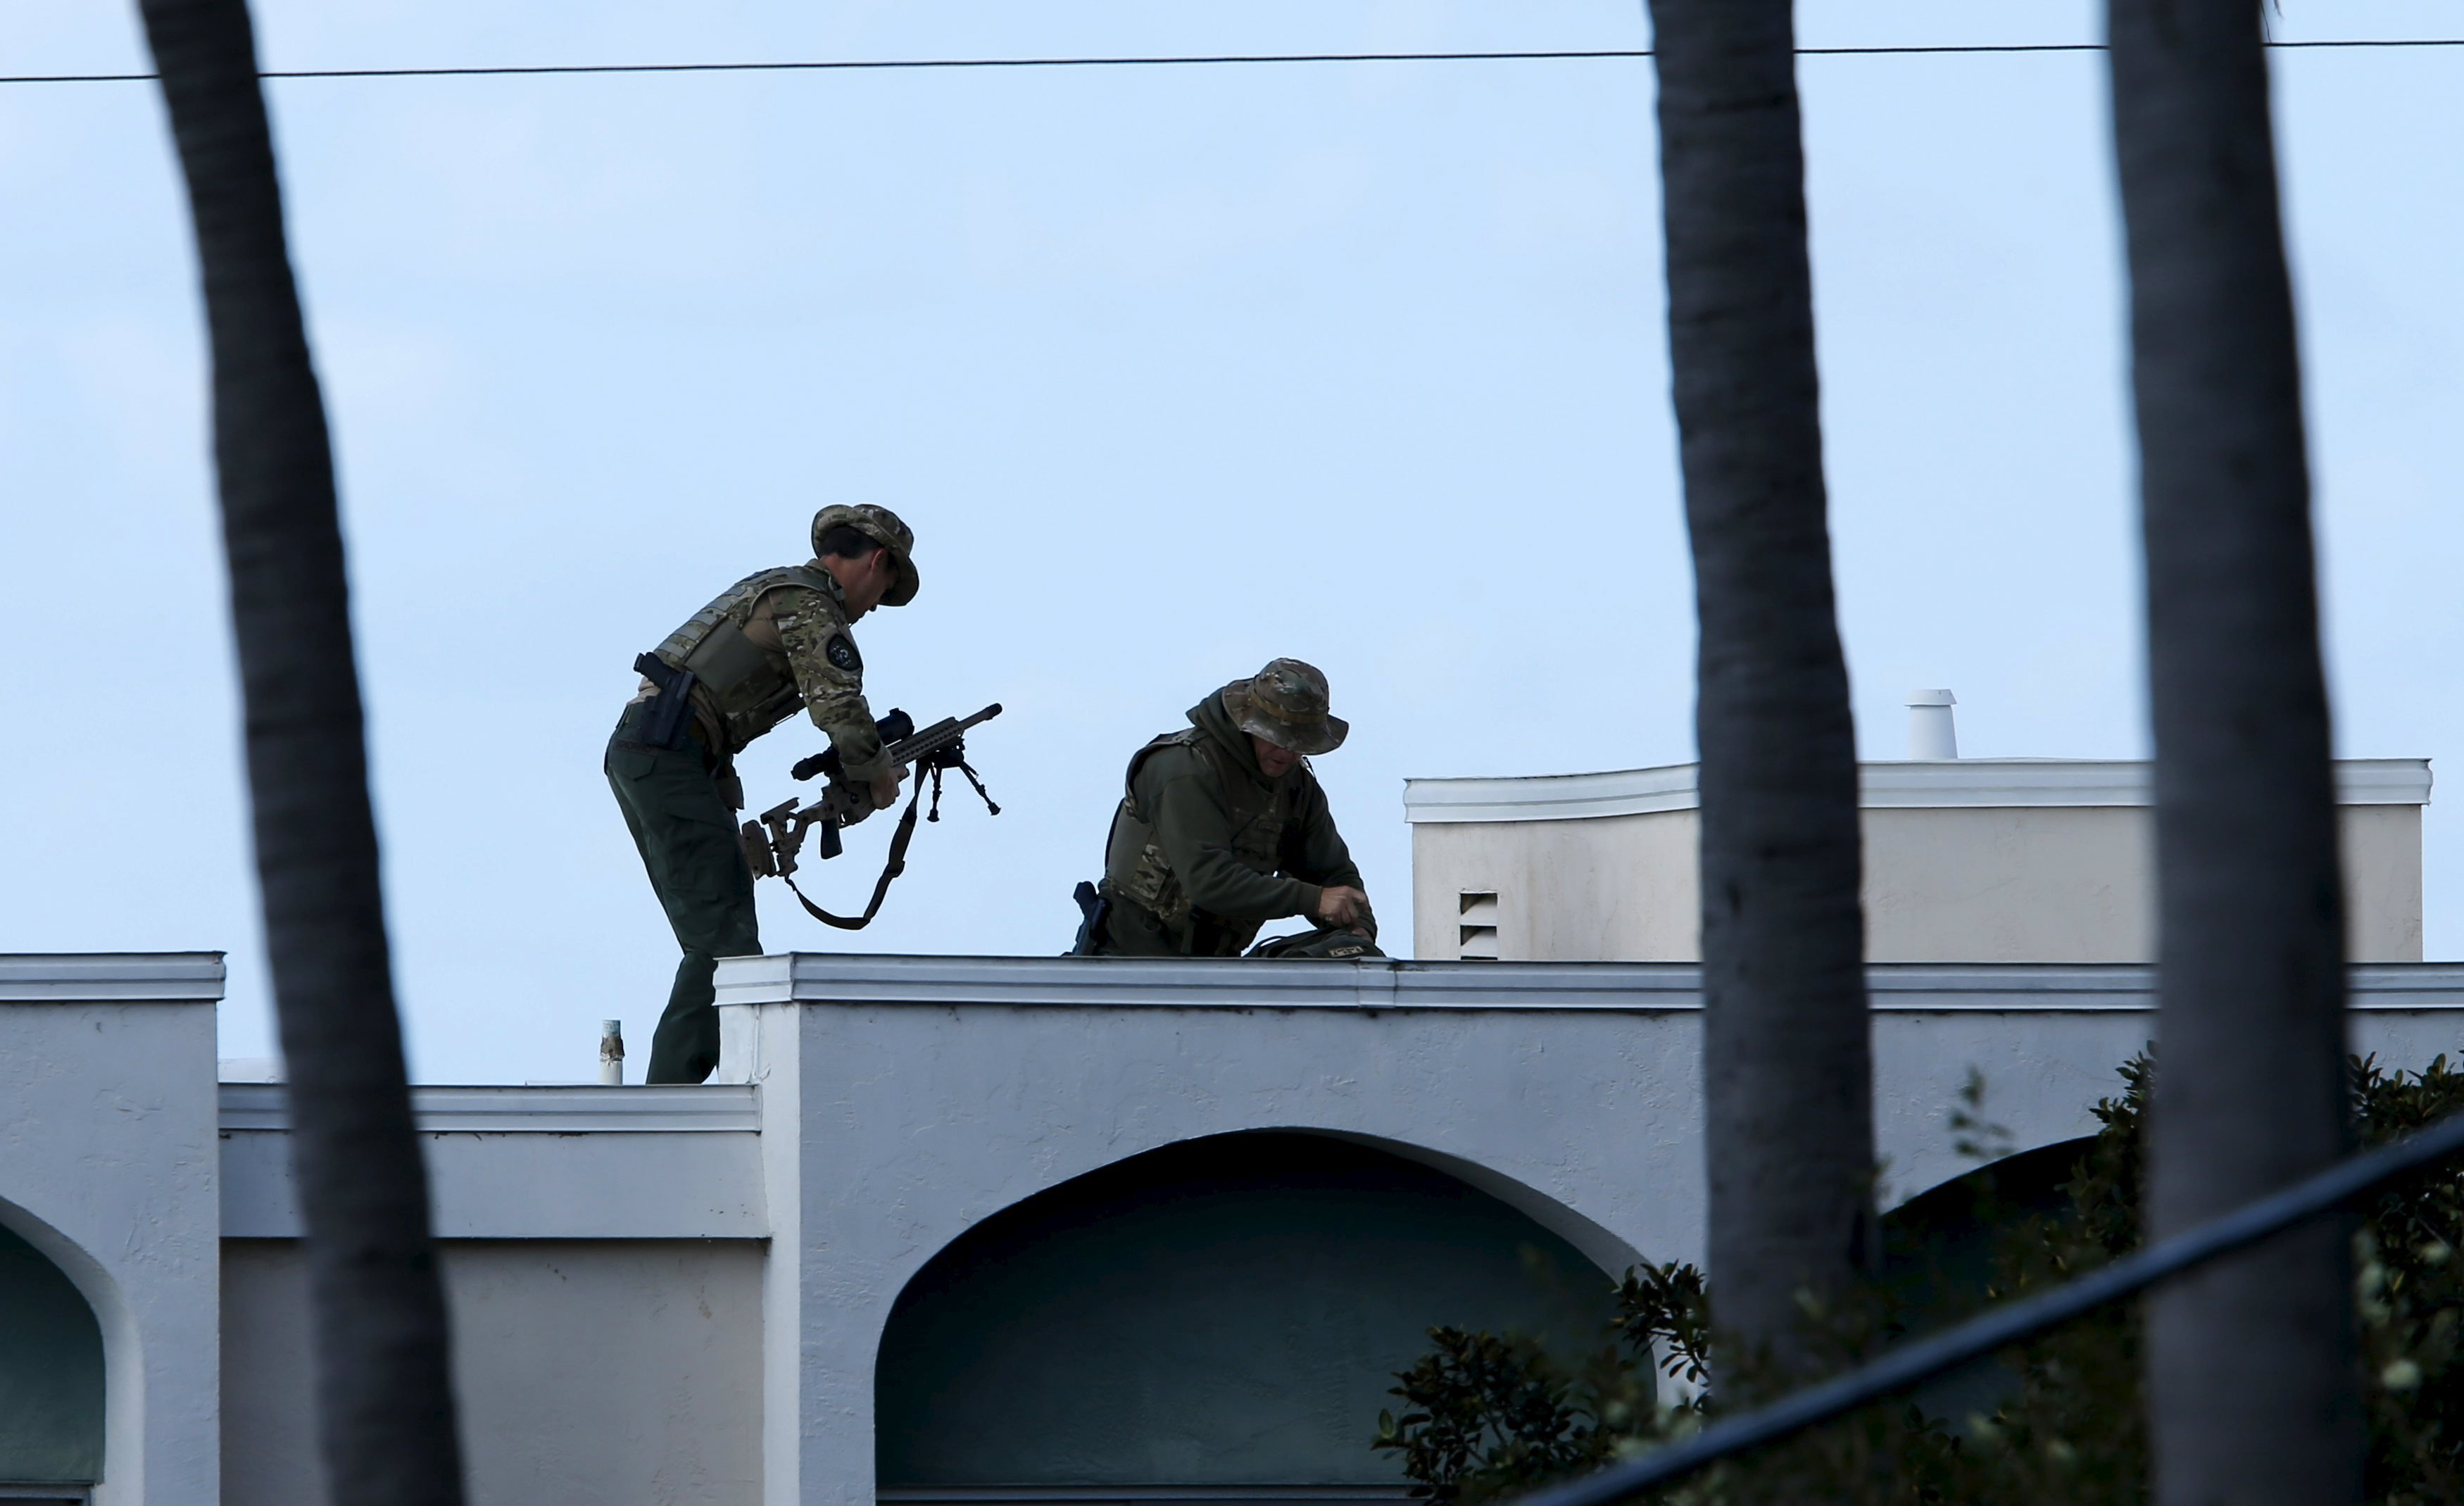 SWAT team officers set up their position at the scene of an active shooting with a suspect with a high powered rifle in the Bankers Hills section of San Diego, California, November 4, 2015.